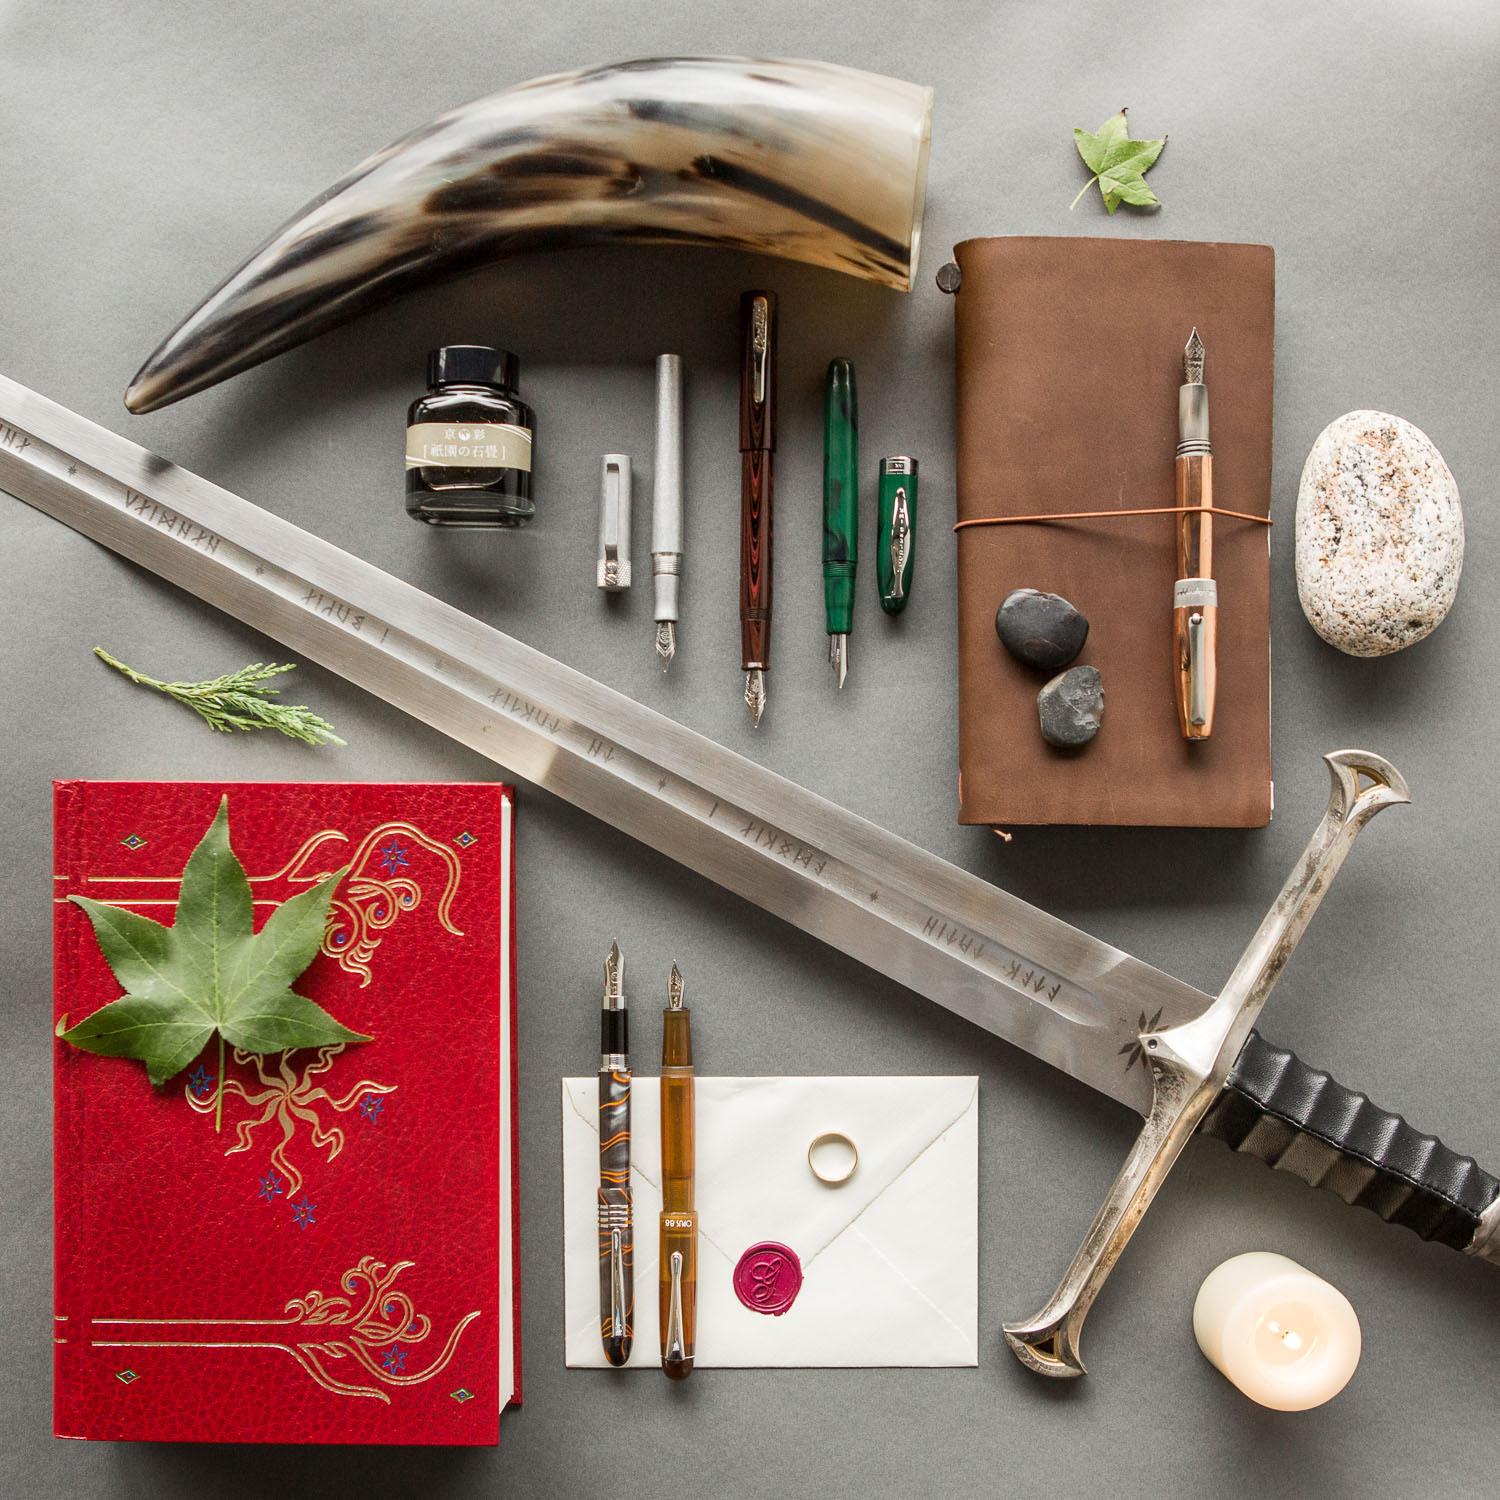 J.R.R. Tolkien's Lord of the Rings themed fountain pens, notebooks, and ink.